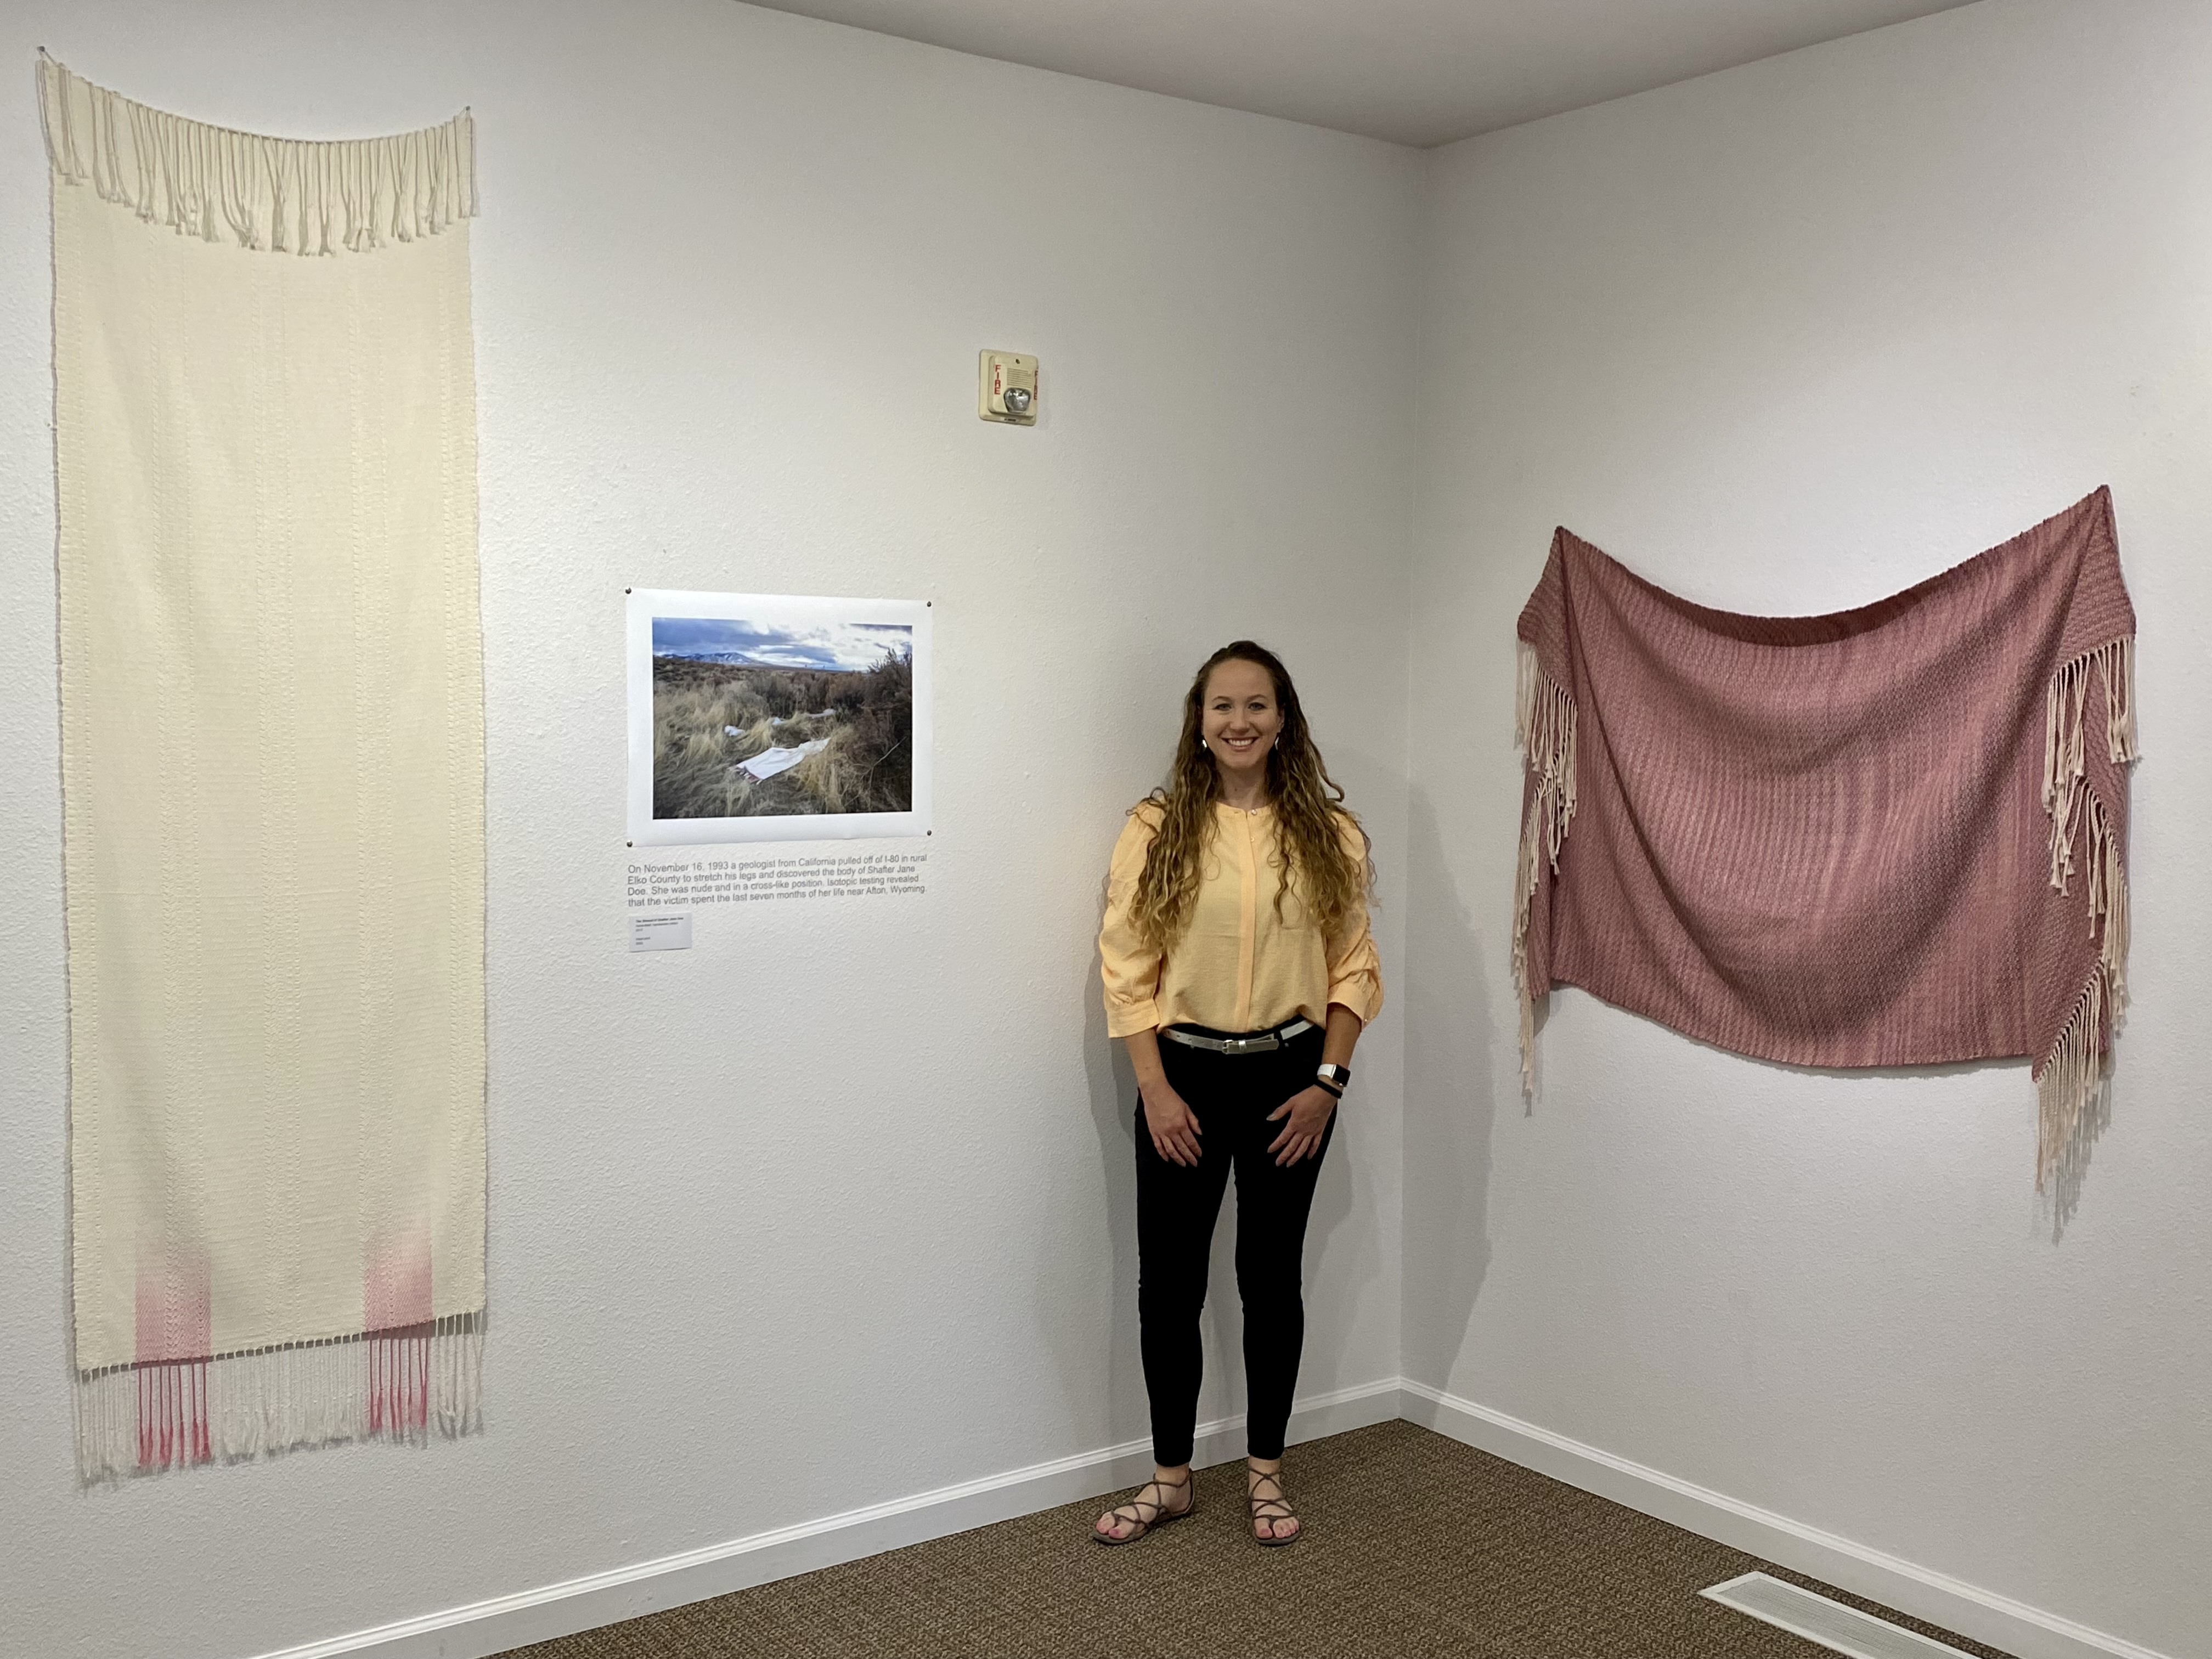 woman stands in museum exhibit surrounded by hanging woven shrouds